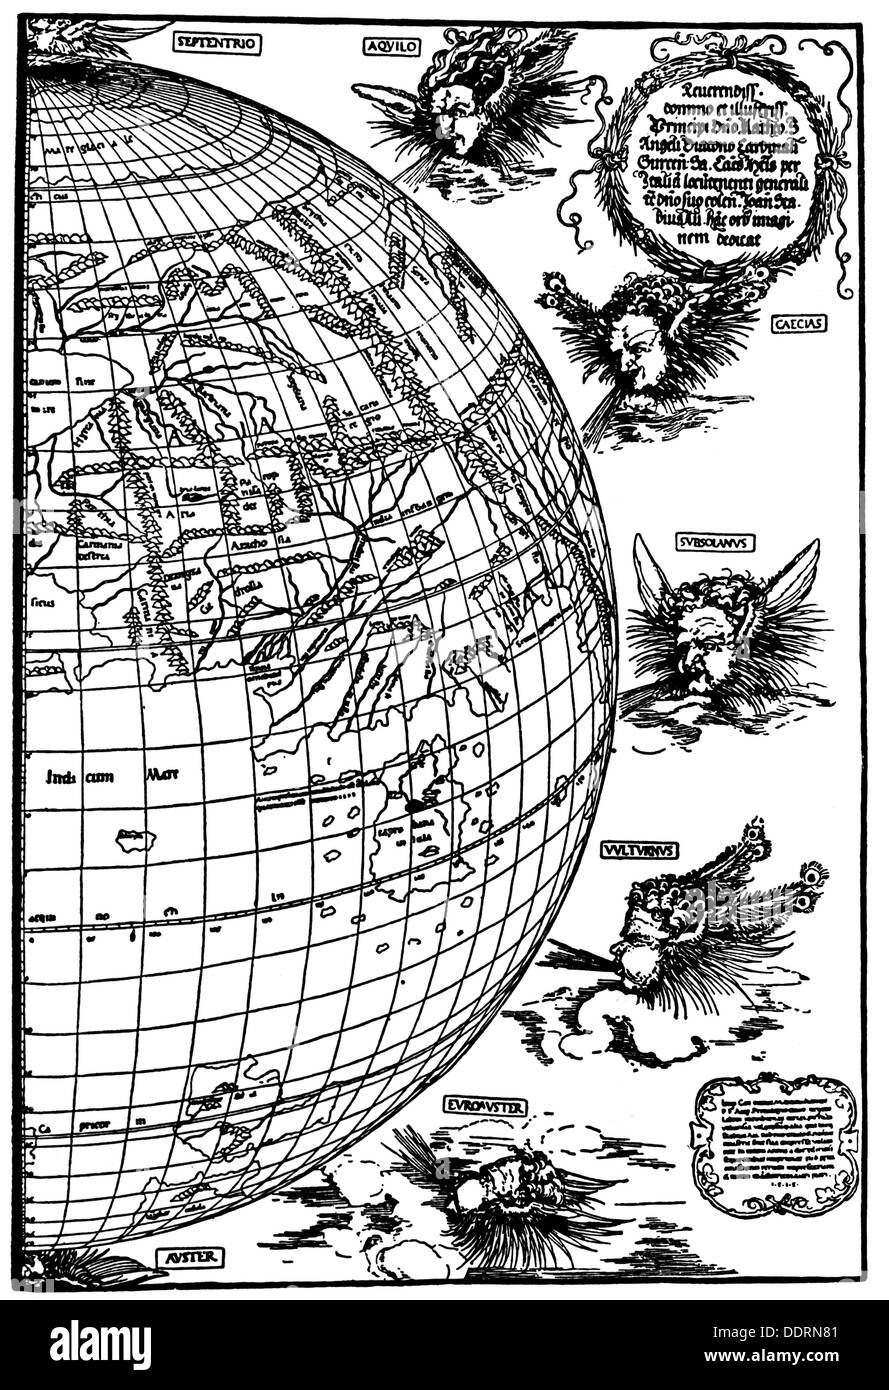 Stock Photo Cartography World Maps World Map Of Johannes Stabius Woodcut Of Albrecht Duerer 1515 Eastern Half Half East Wind Winds Allegory